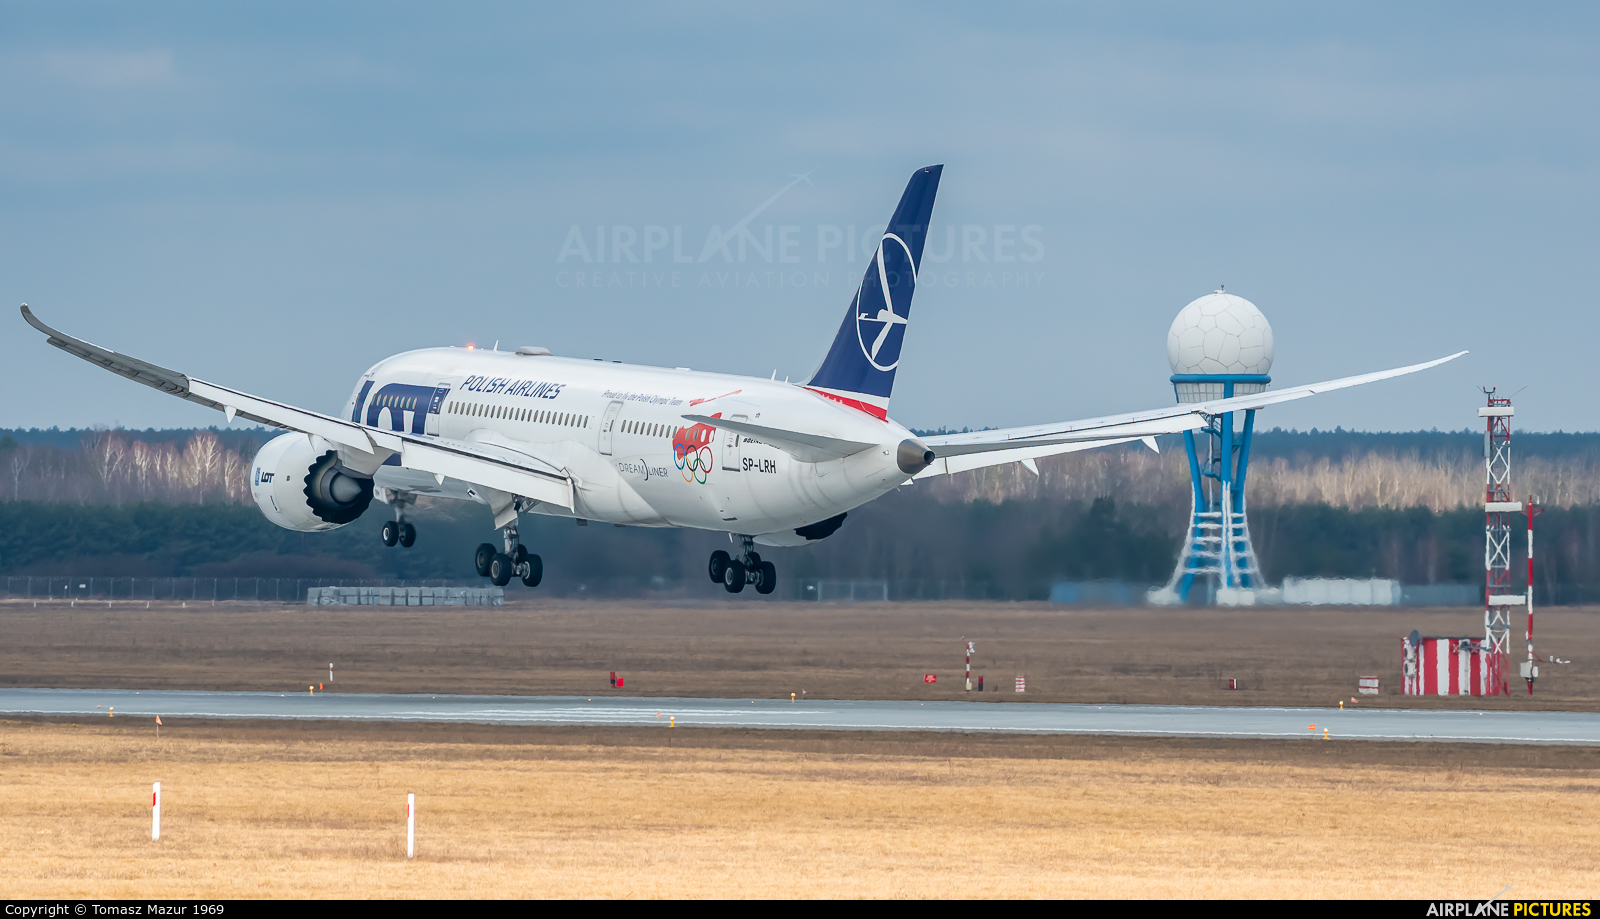 LOT - Polish Airlines SP-LRH aircraft at Katowice - Pyrzowice